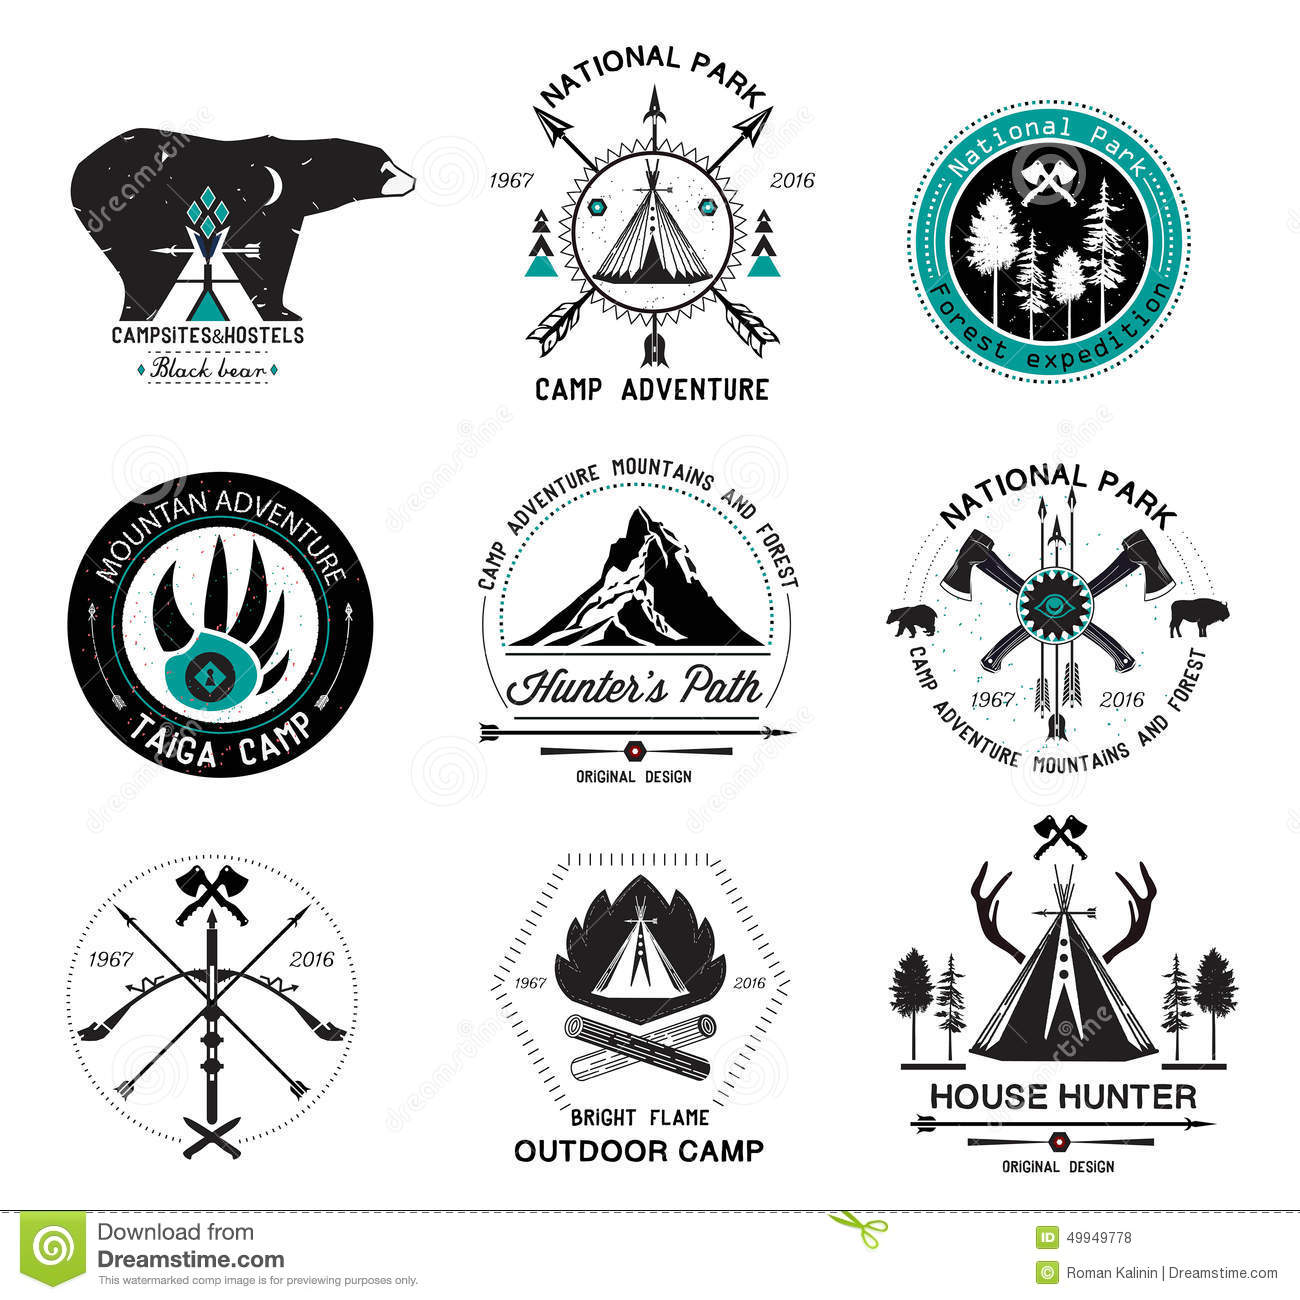 Wood Badge Embroidery Designs